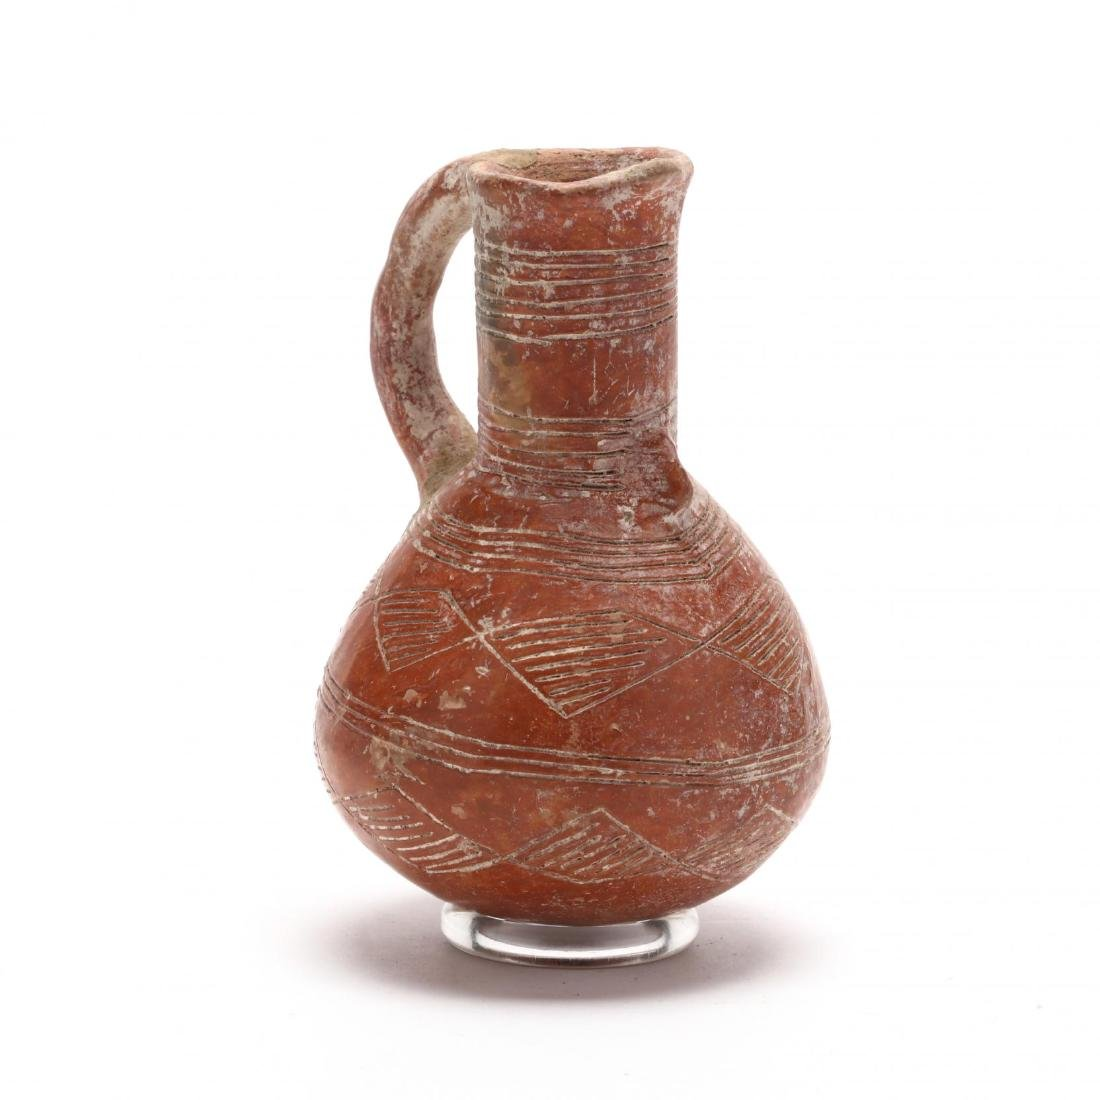 Cypriot Early Bronze Age Polished Red Ware Juglet